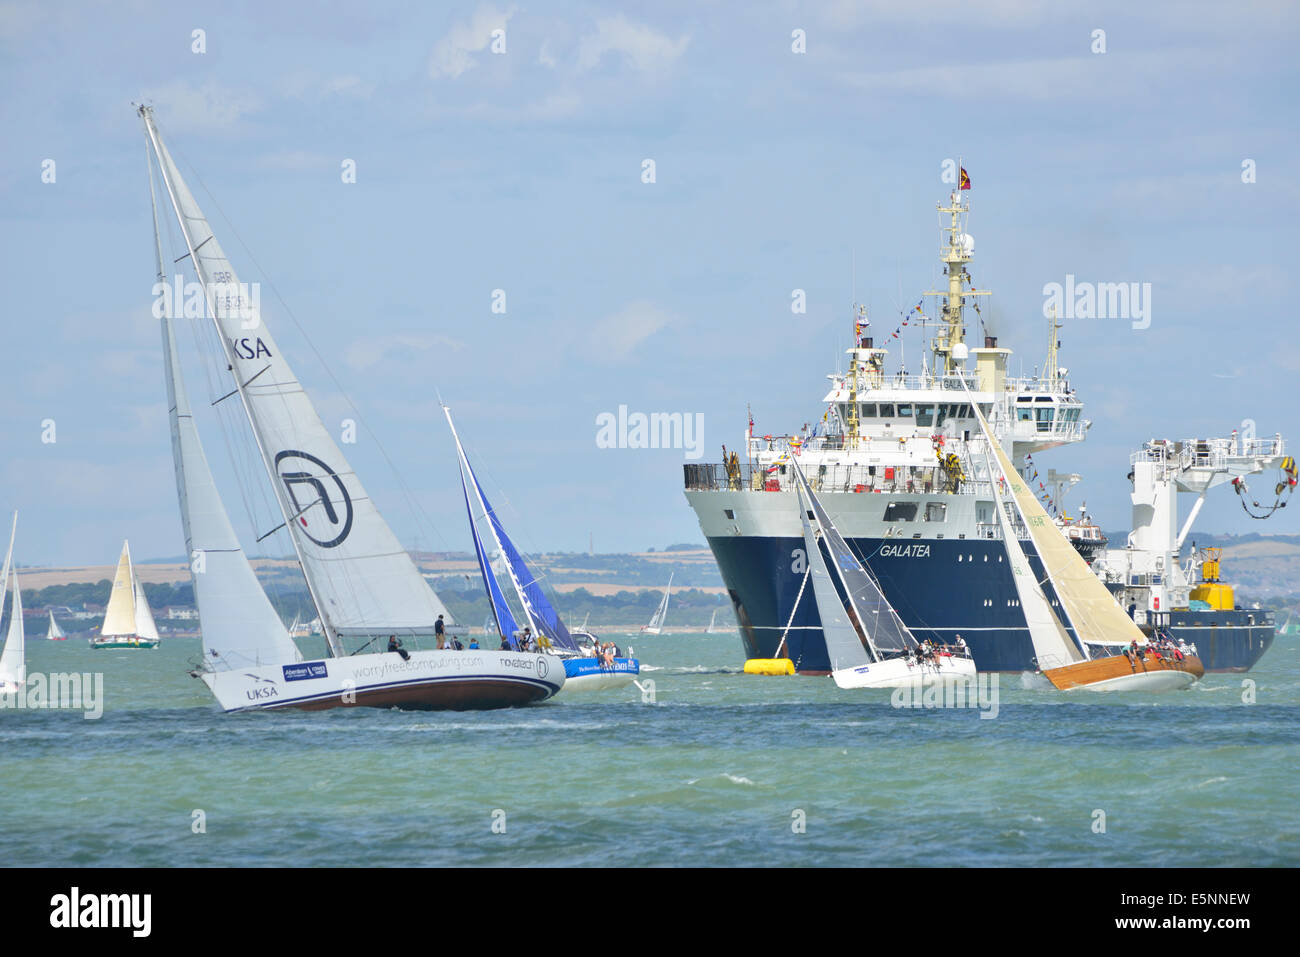 Yachts race in front of THV Galatea  moored of Cowes .Trinity House's Multi Functional Tender (MFT), GALATEA,is - Stock Image